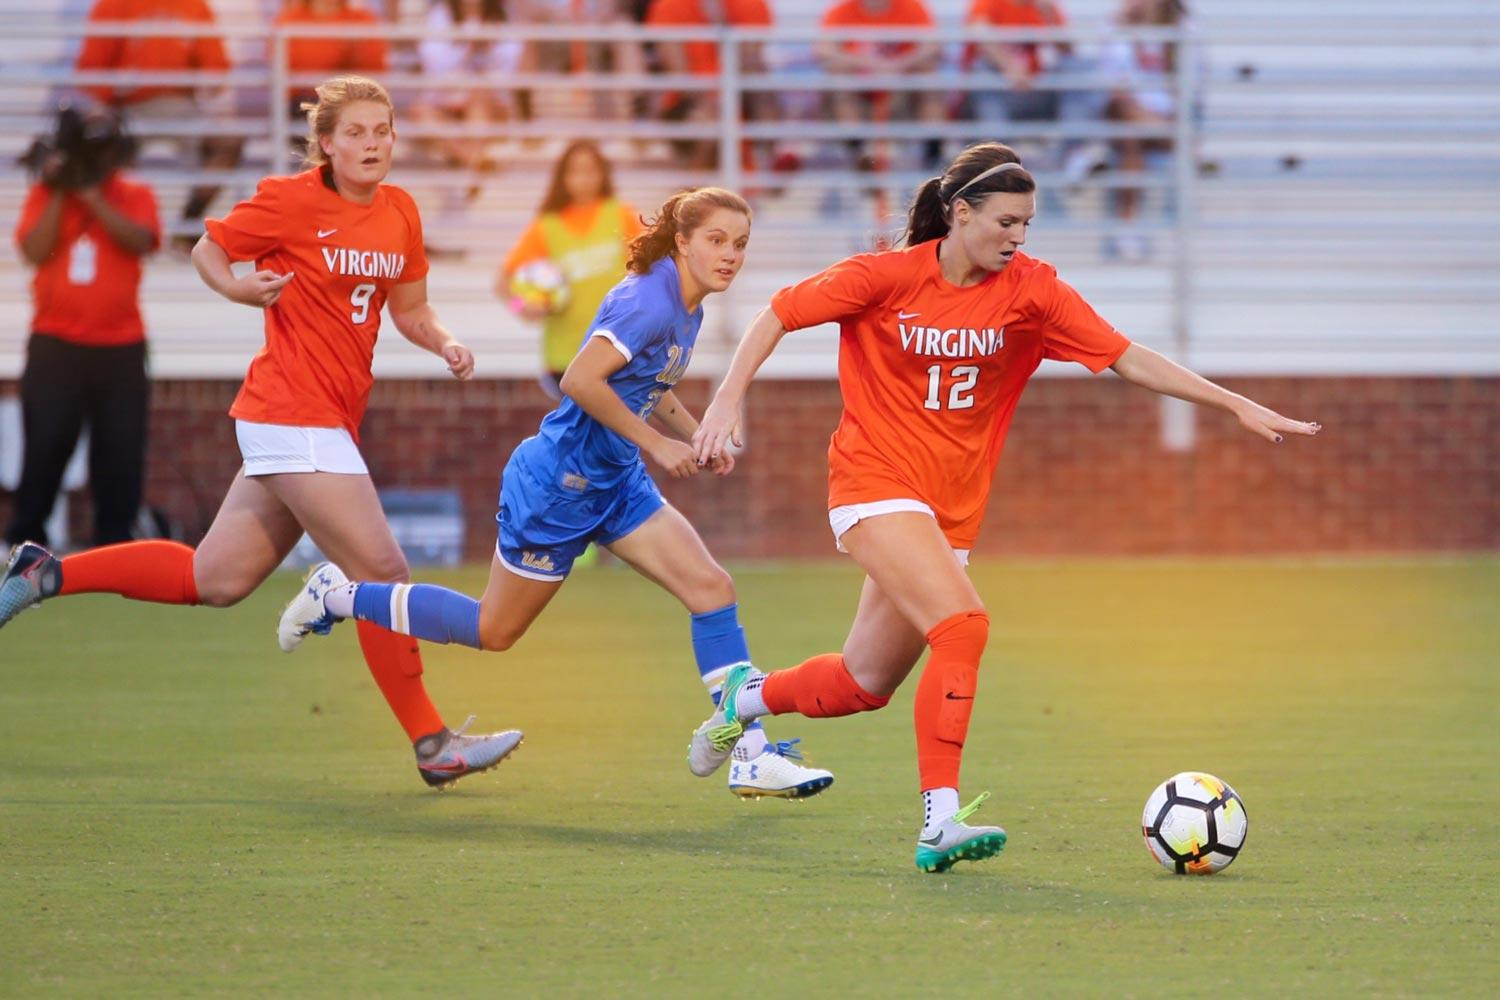 Veronica Latsko tallied five game-winning goals and led the Cavaliers in scoring last fall before being drafted by the Houston Dash of the National Women's Soccer League.